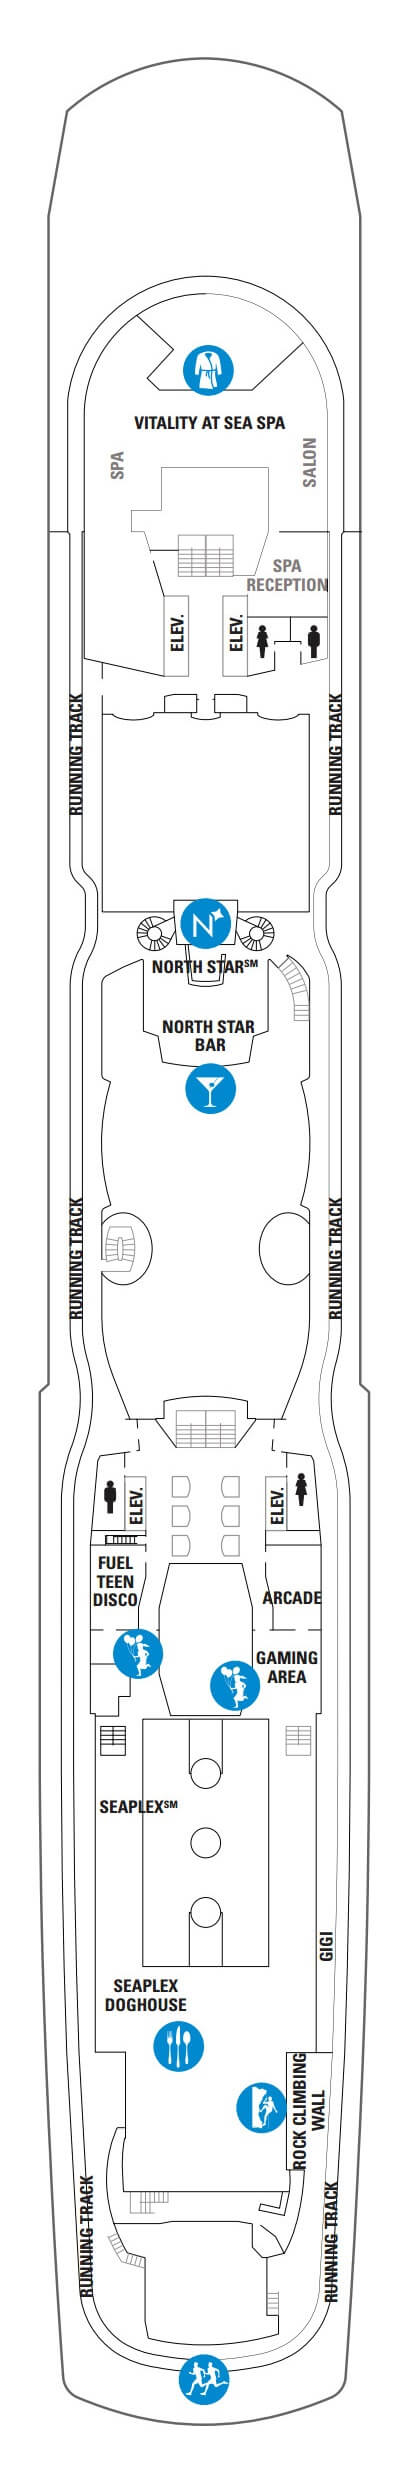 Anthem Of The Seas Deck 15 layout